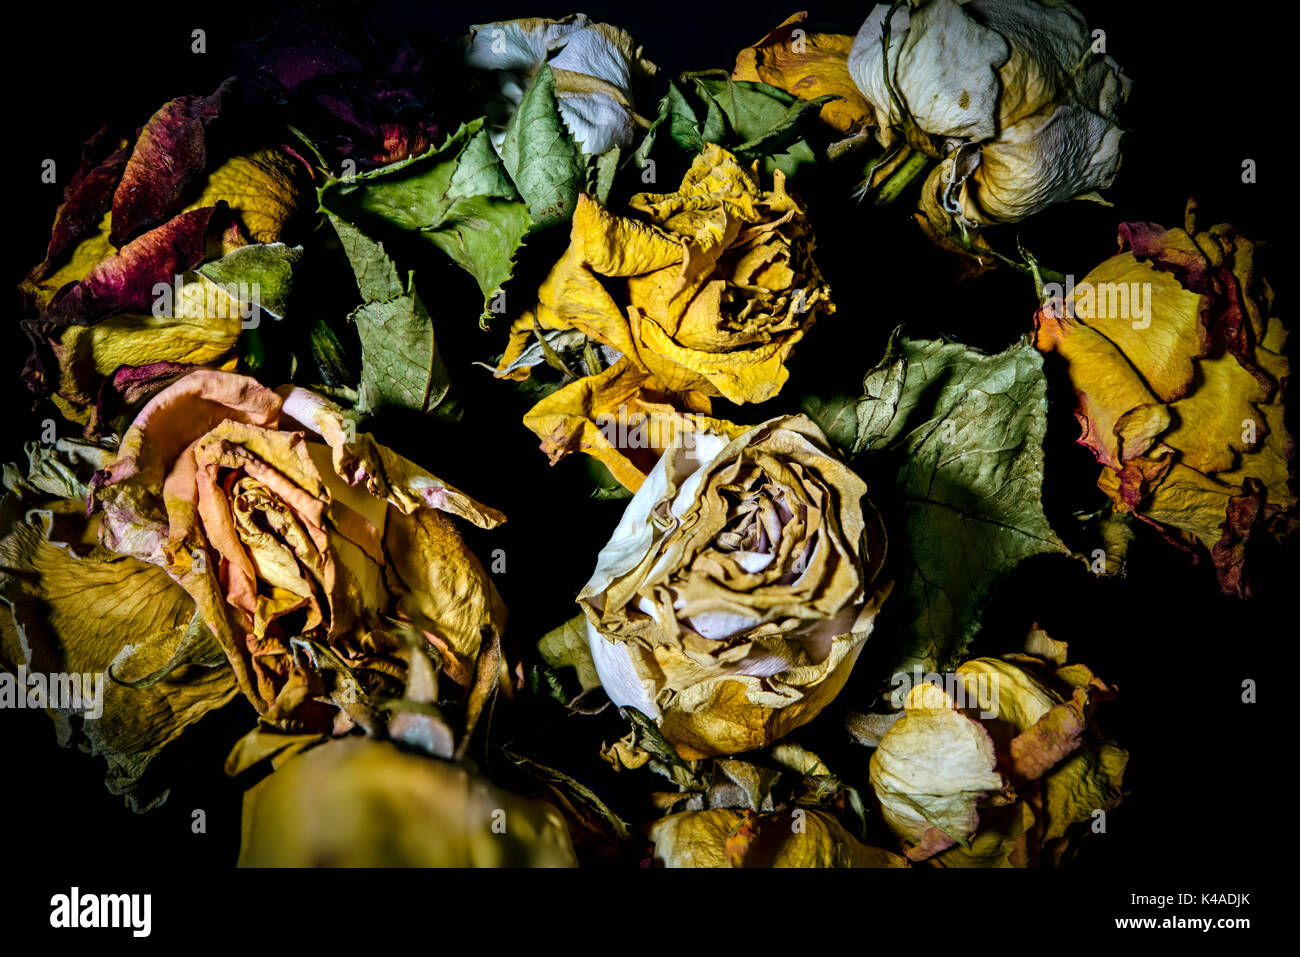 Withered Roses - Stock Image